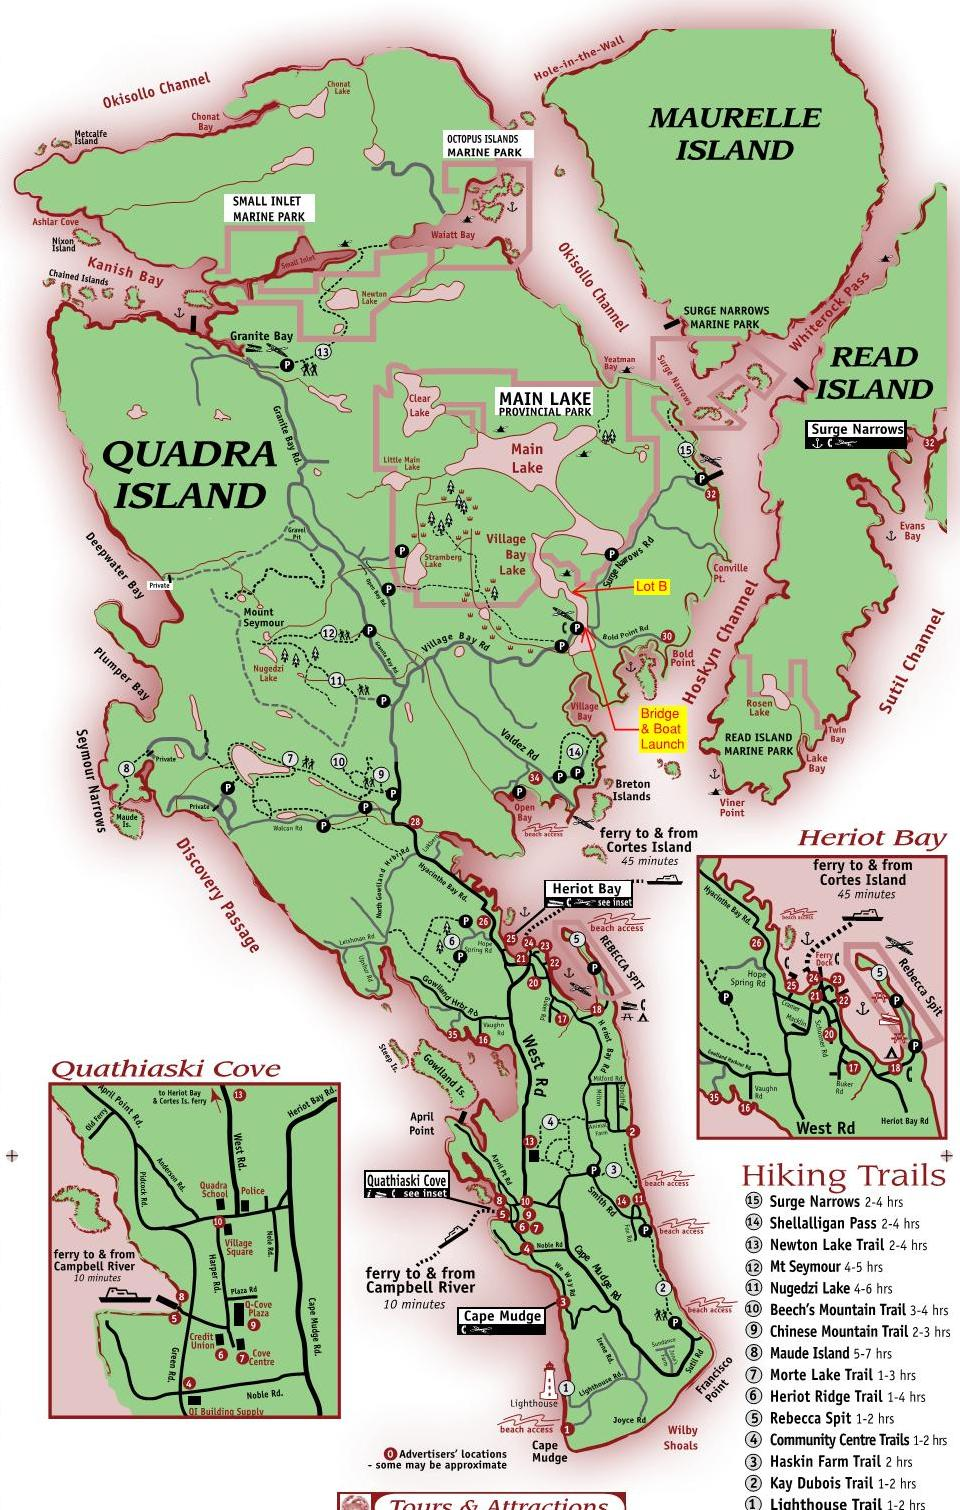 Quadra Island Map Quadra Island Map | compressportnederland Quadra Island Map